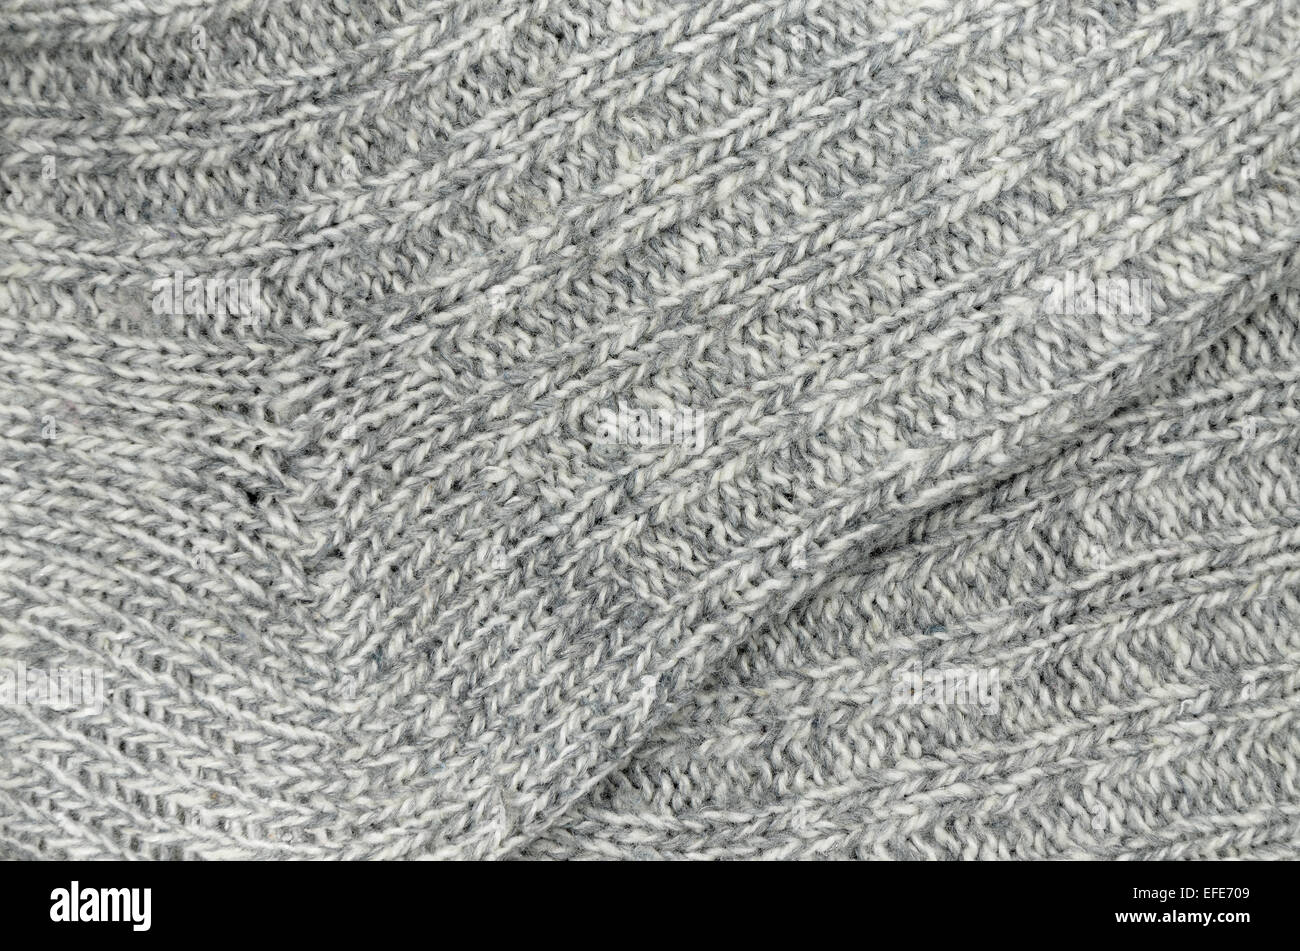 close up of two gray and white flecked and striped knitted socks, full frame - Stock Image